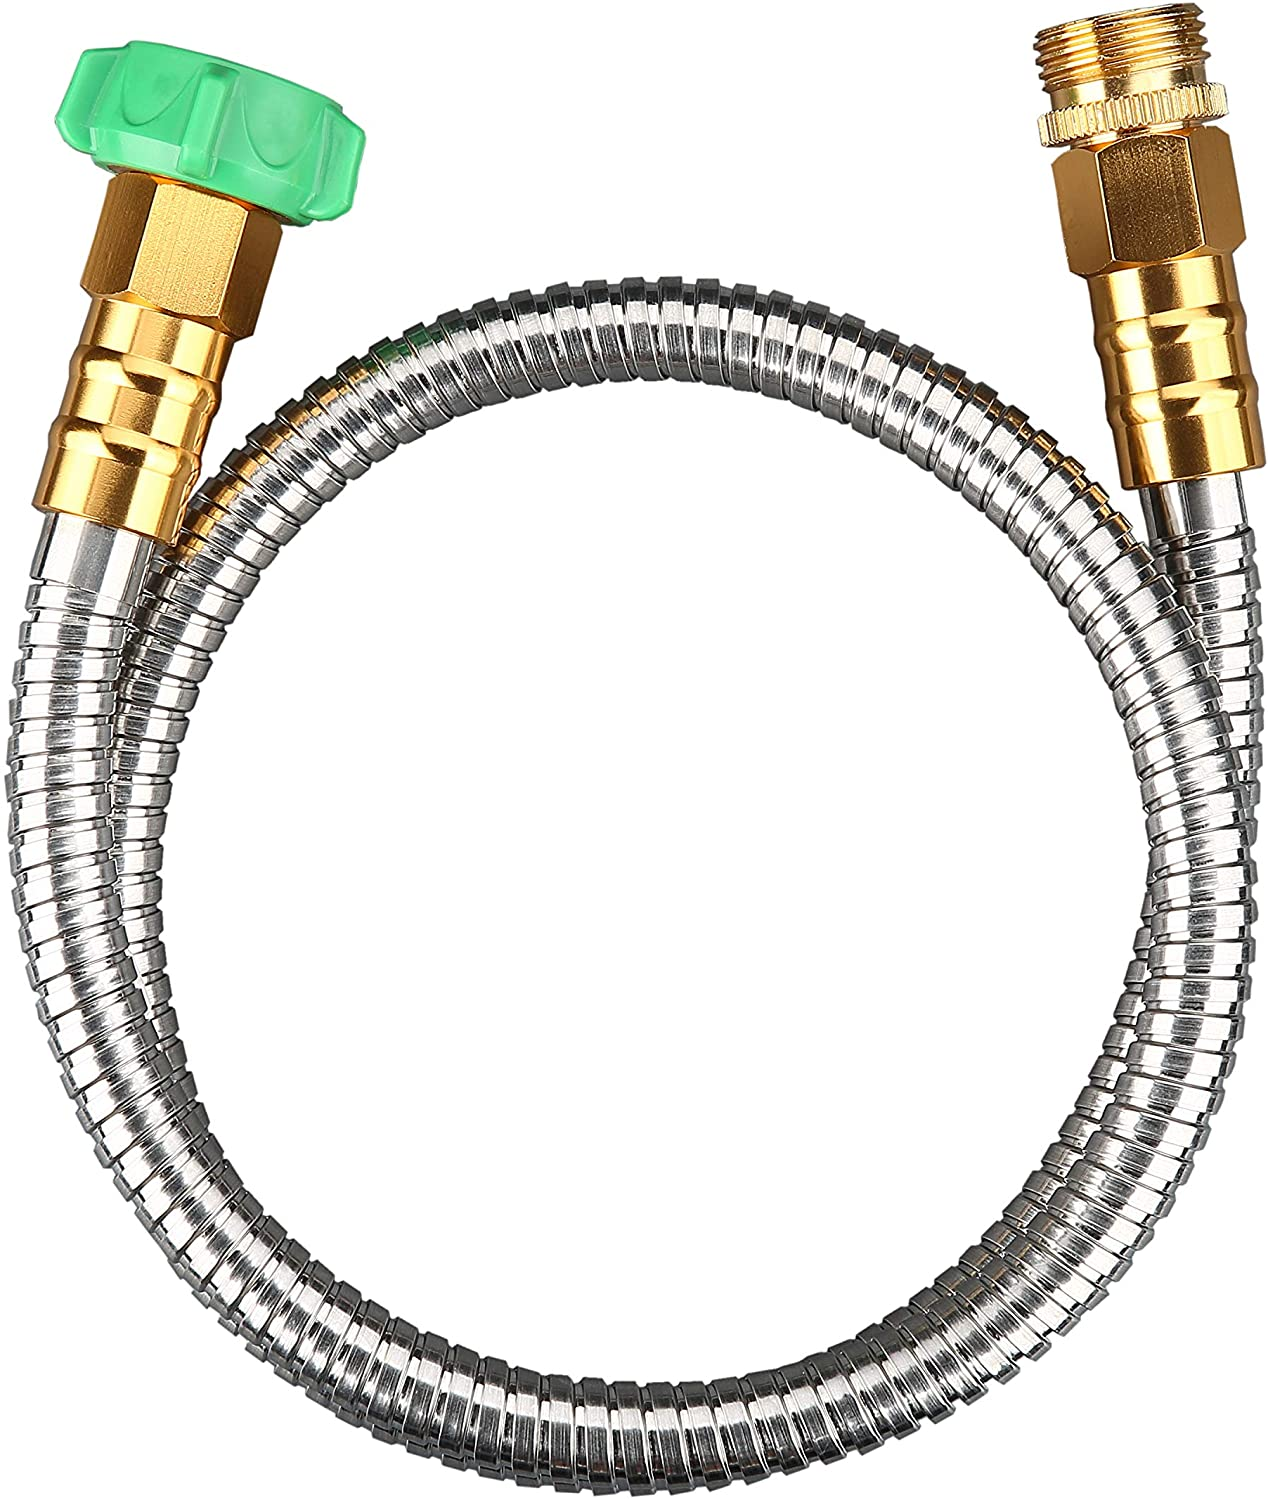 BEAULIFE 304 Stainless Steel Metal Garden Hose Connector 5 Feet Short Garden Water Hose Extension Extender, Drinking Water Hose Lead and BPA Free